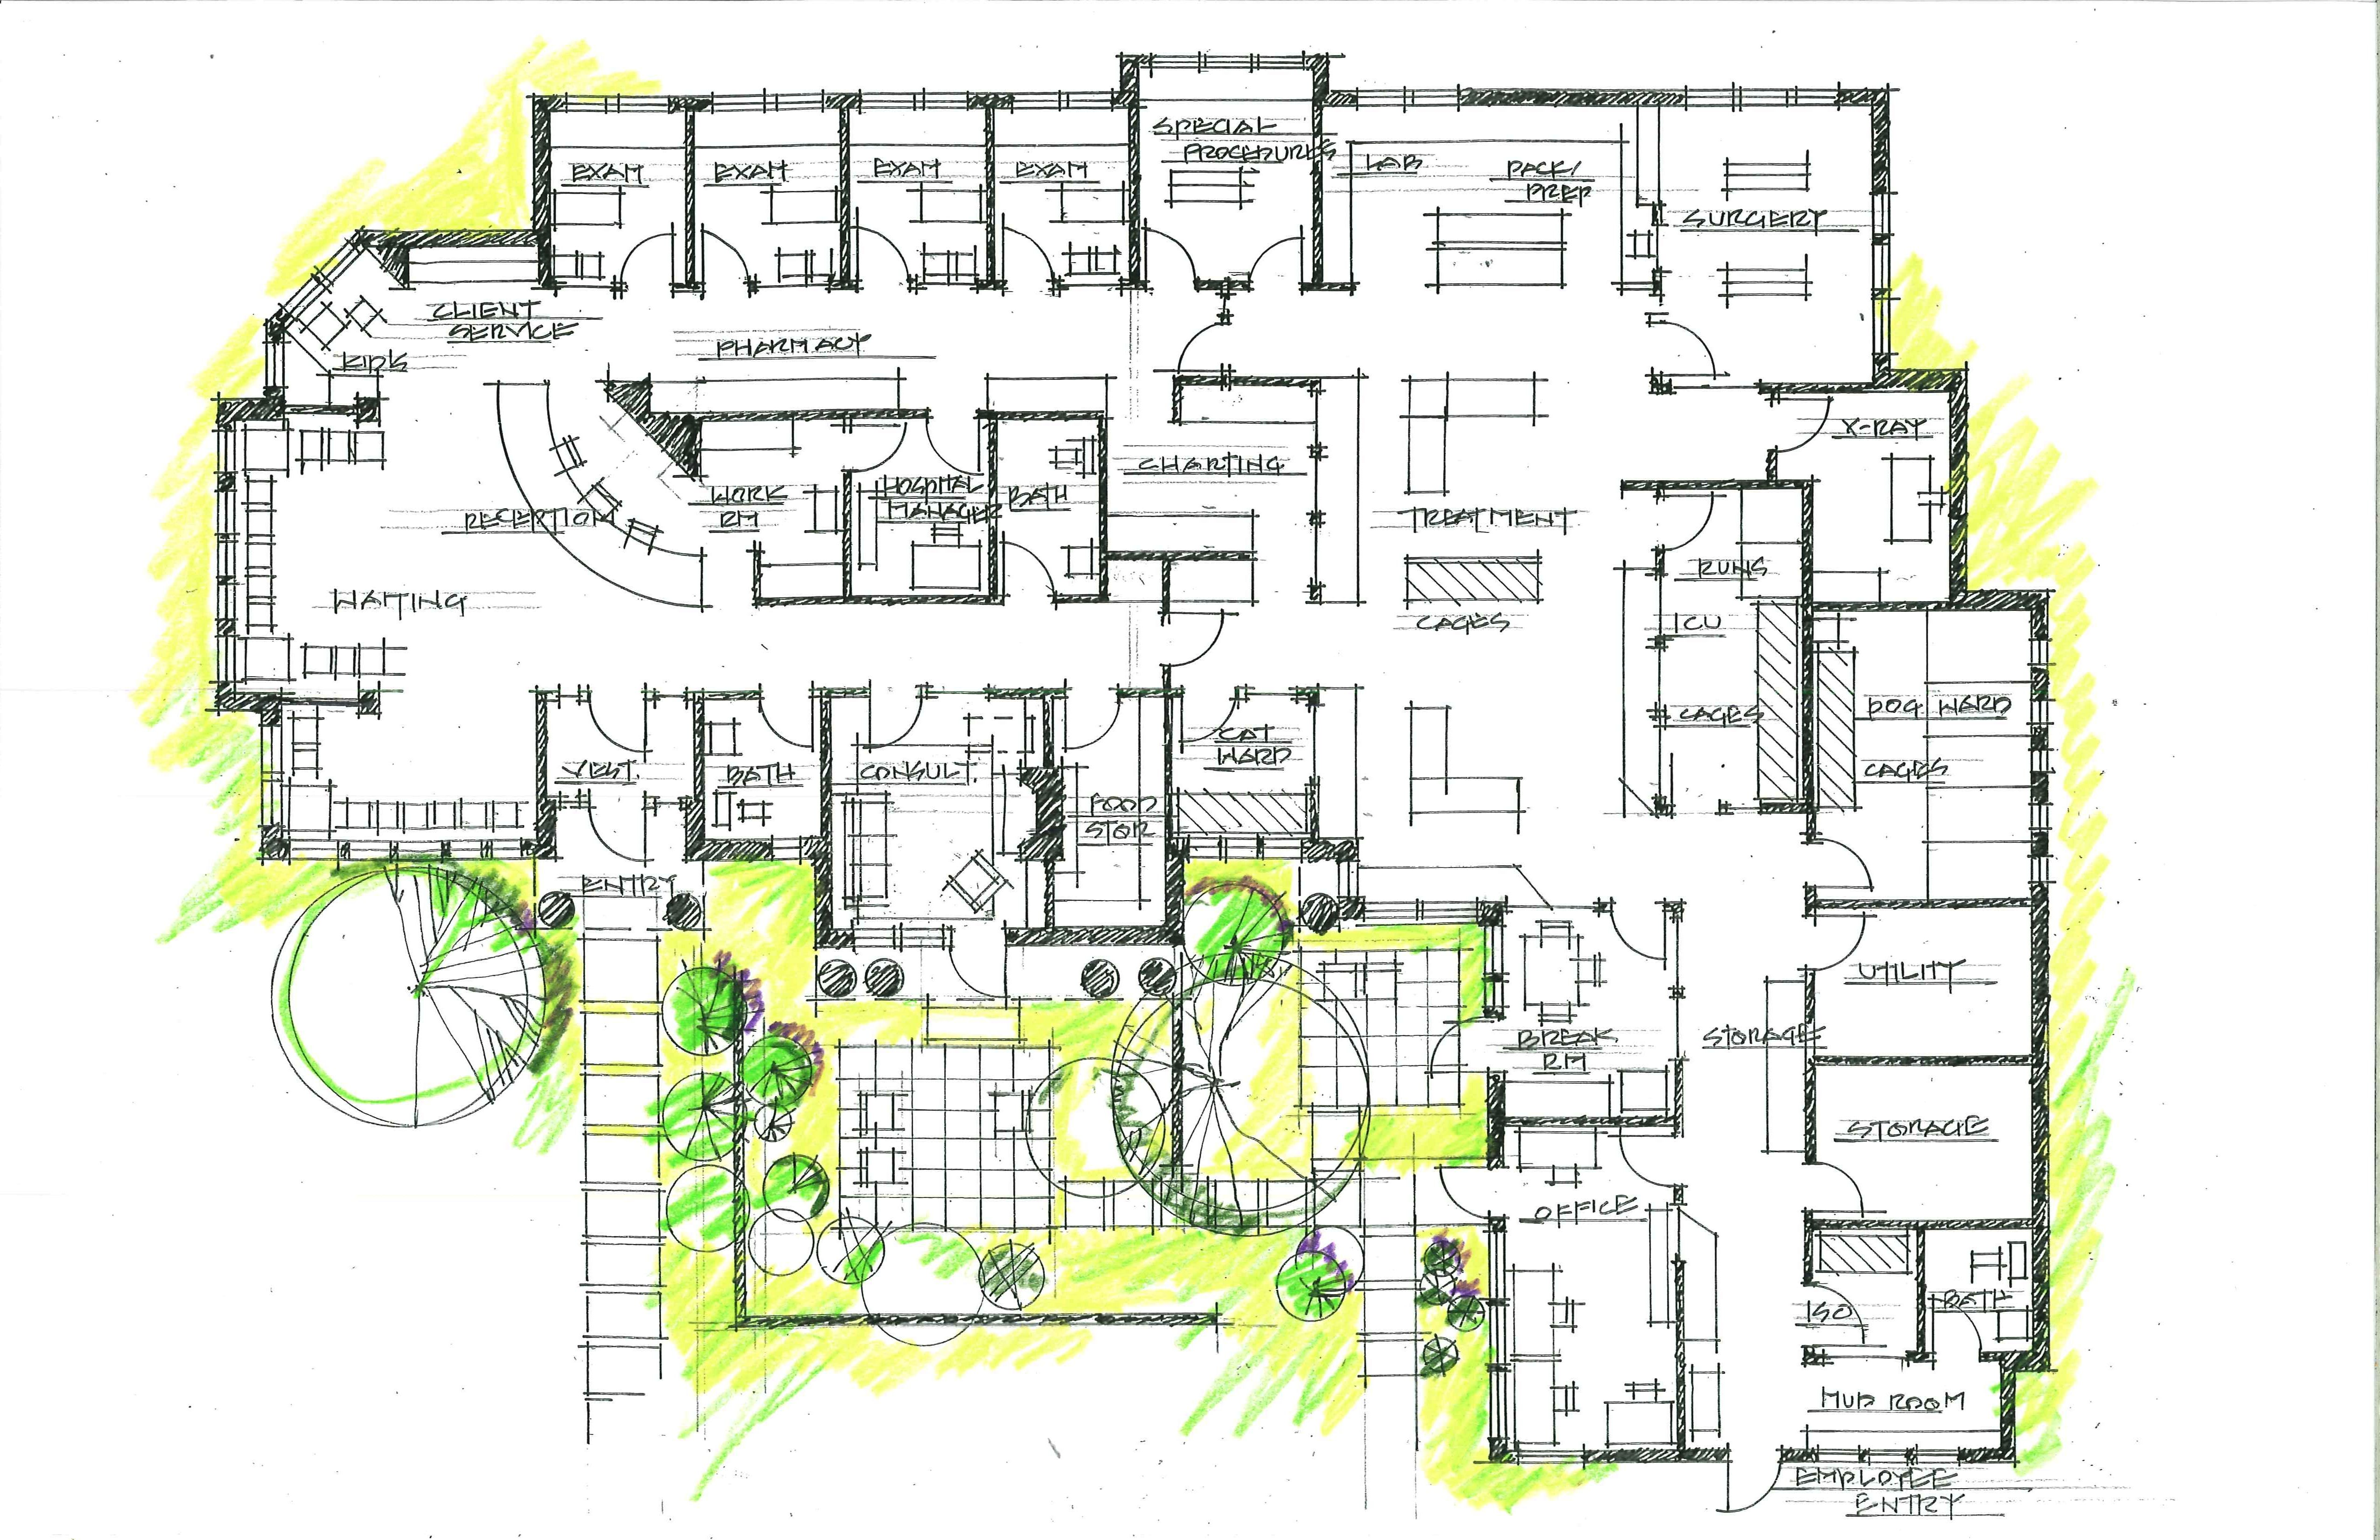 Hospital Layout Plan Szukaj W Google Architecture Layouts Pinterest Architecture Layout